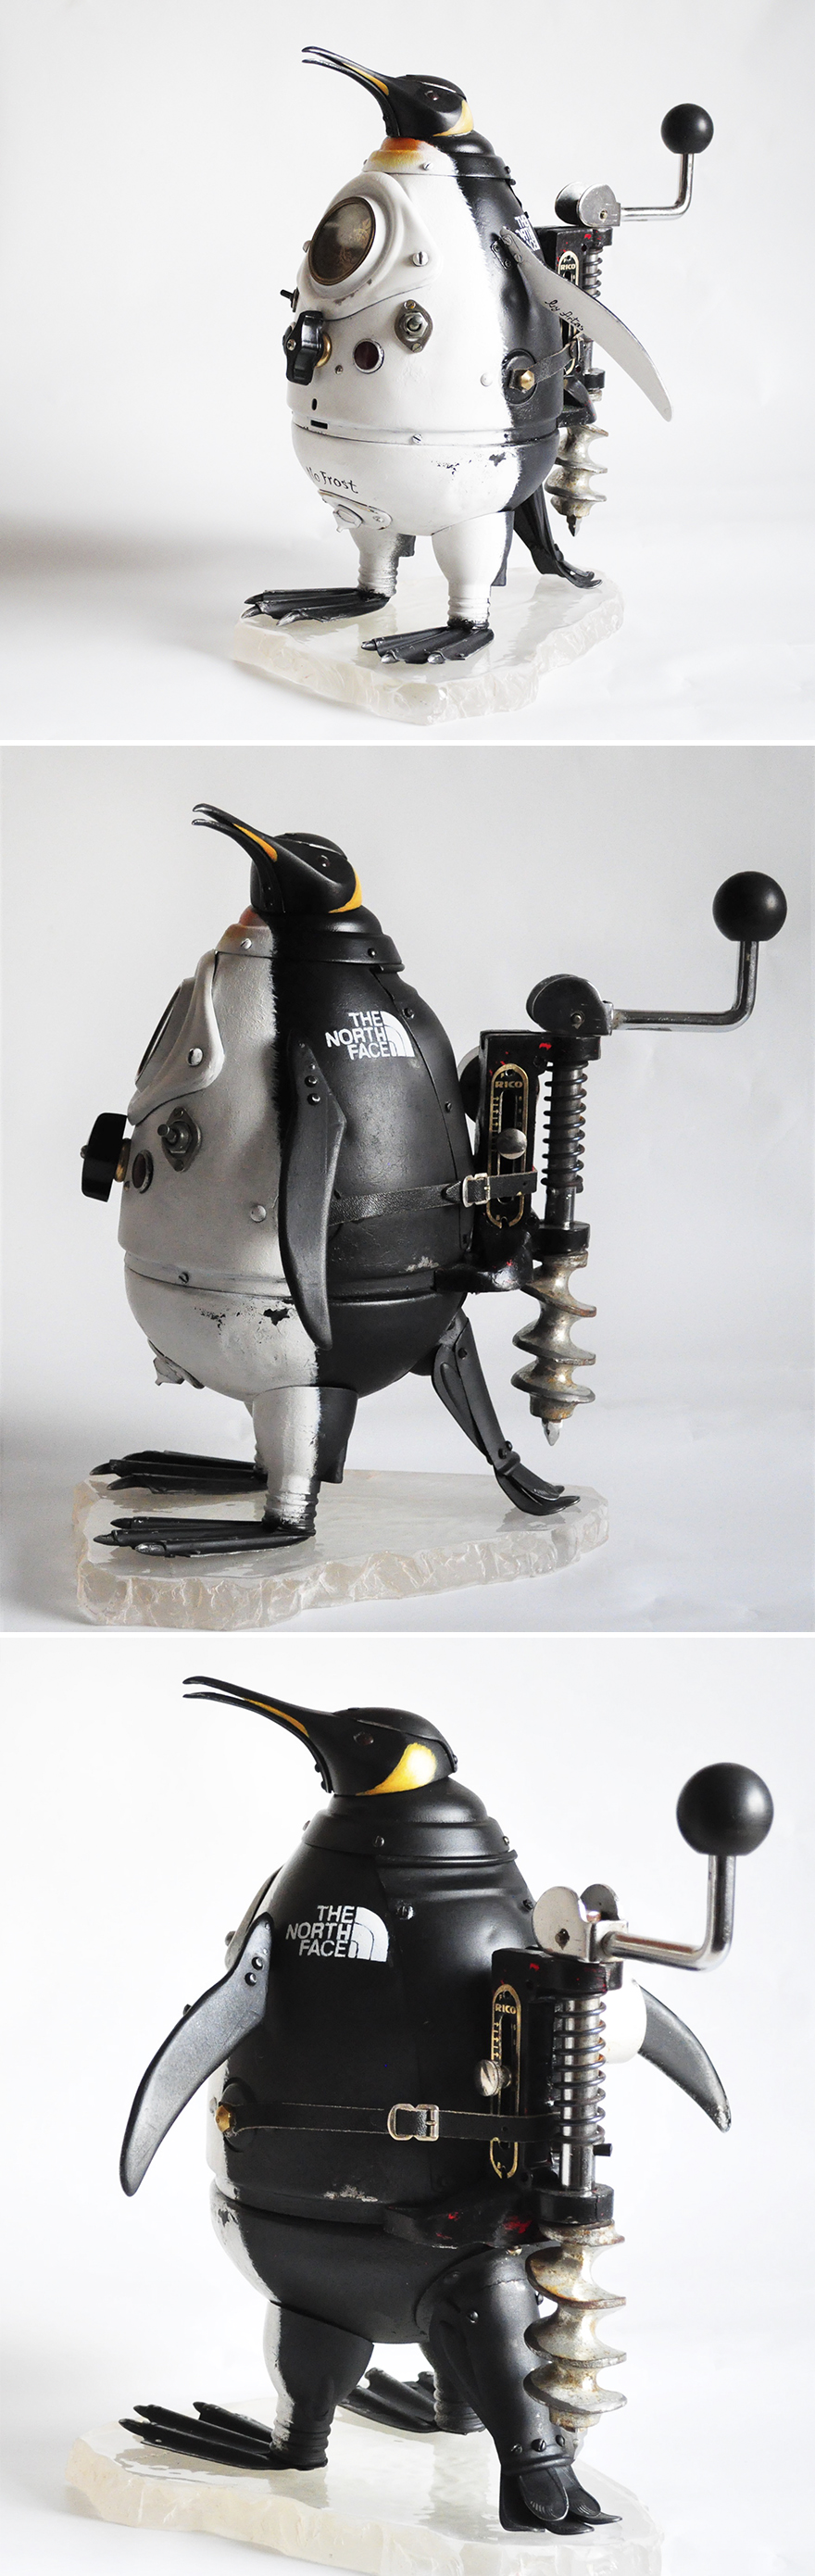 https://i0.wp.com/static.boredpanda.com/blog/wp-content/uploads/2017/04/My-steampunk-sculptures-58ef39c5e5f38__880.jpg